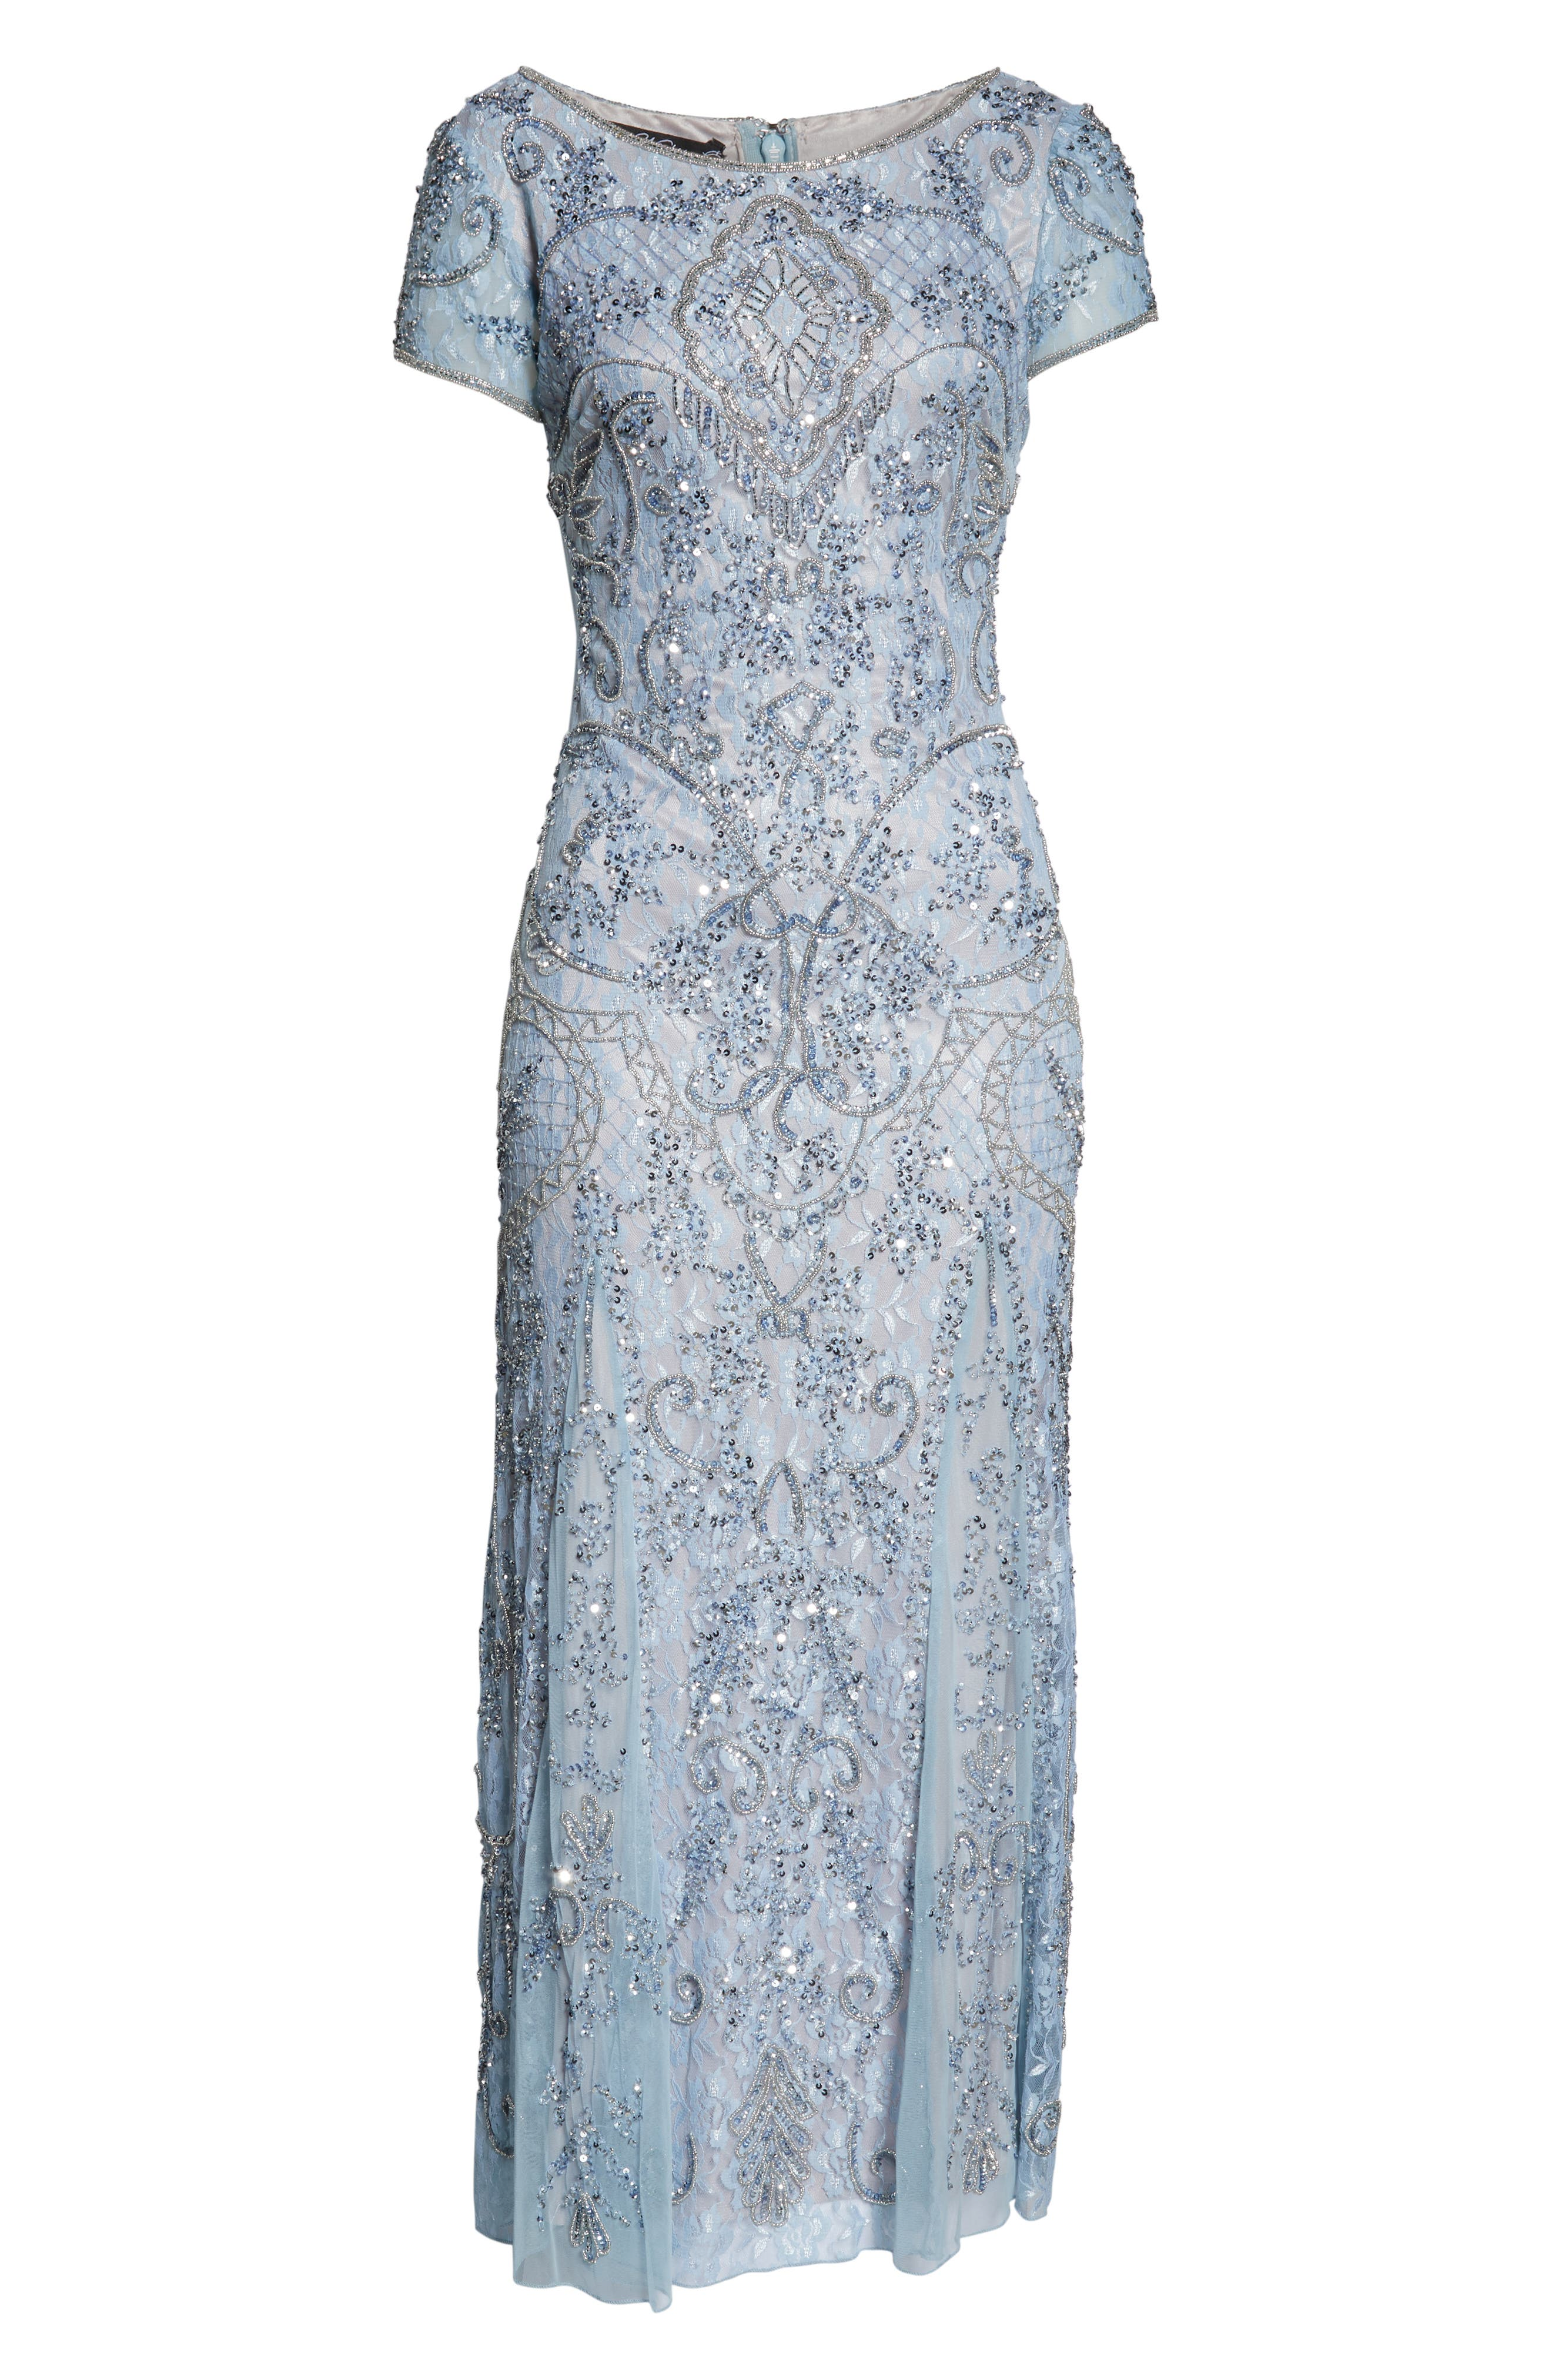 PISARRO NIGHTS, Embellished Lace Gown, Alternate thumbnail 7, color, SKY BLUE